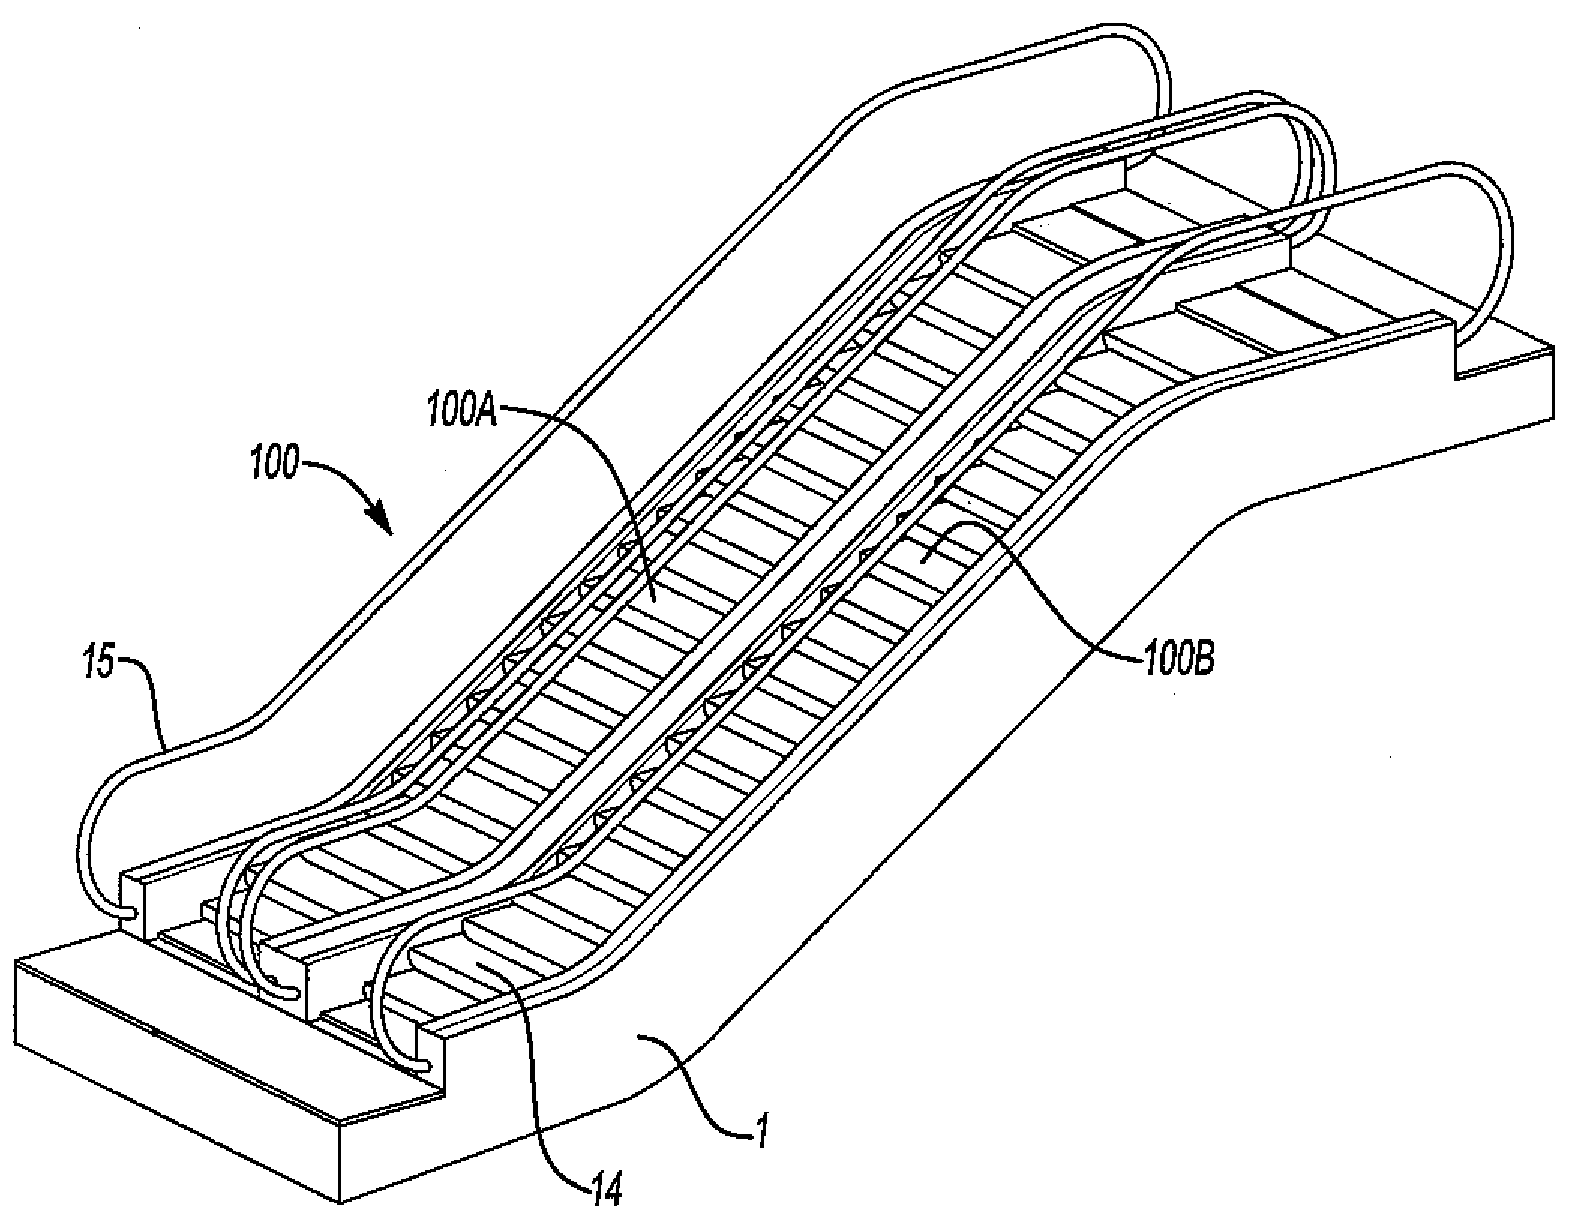 patent drawing of escalator sketch coloring page